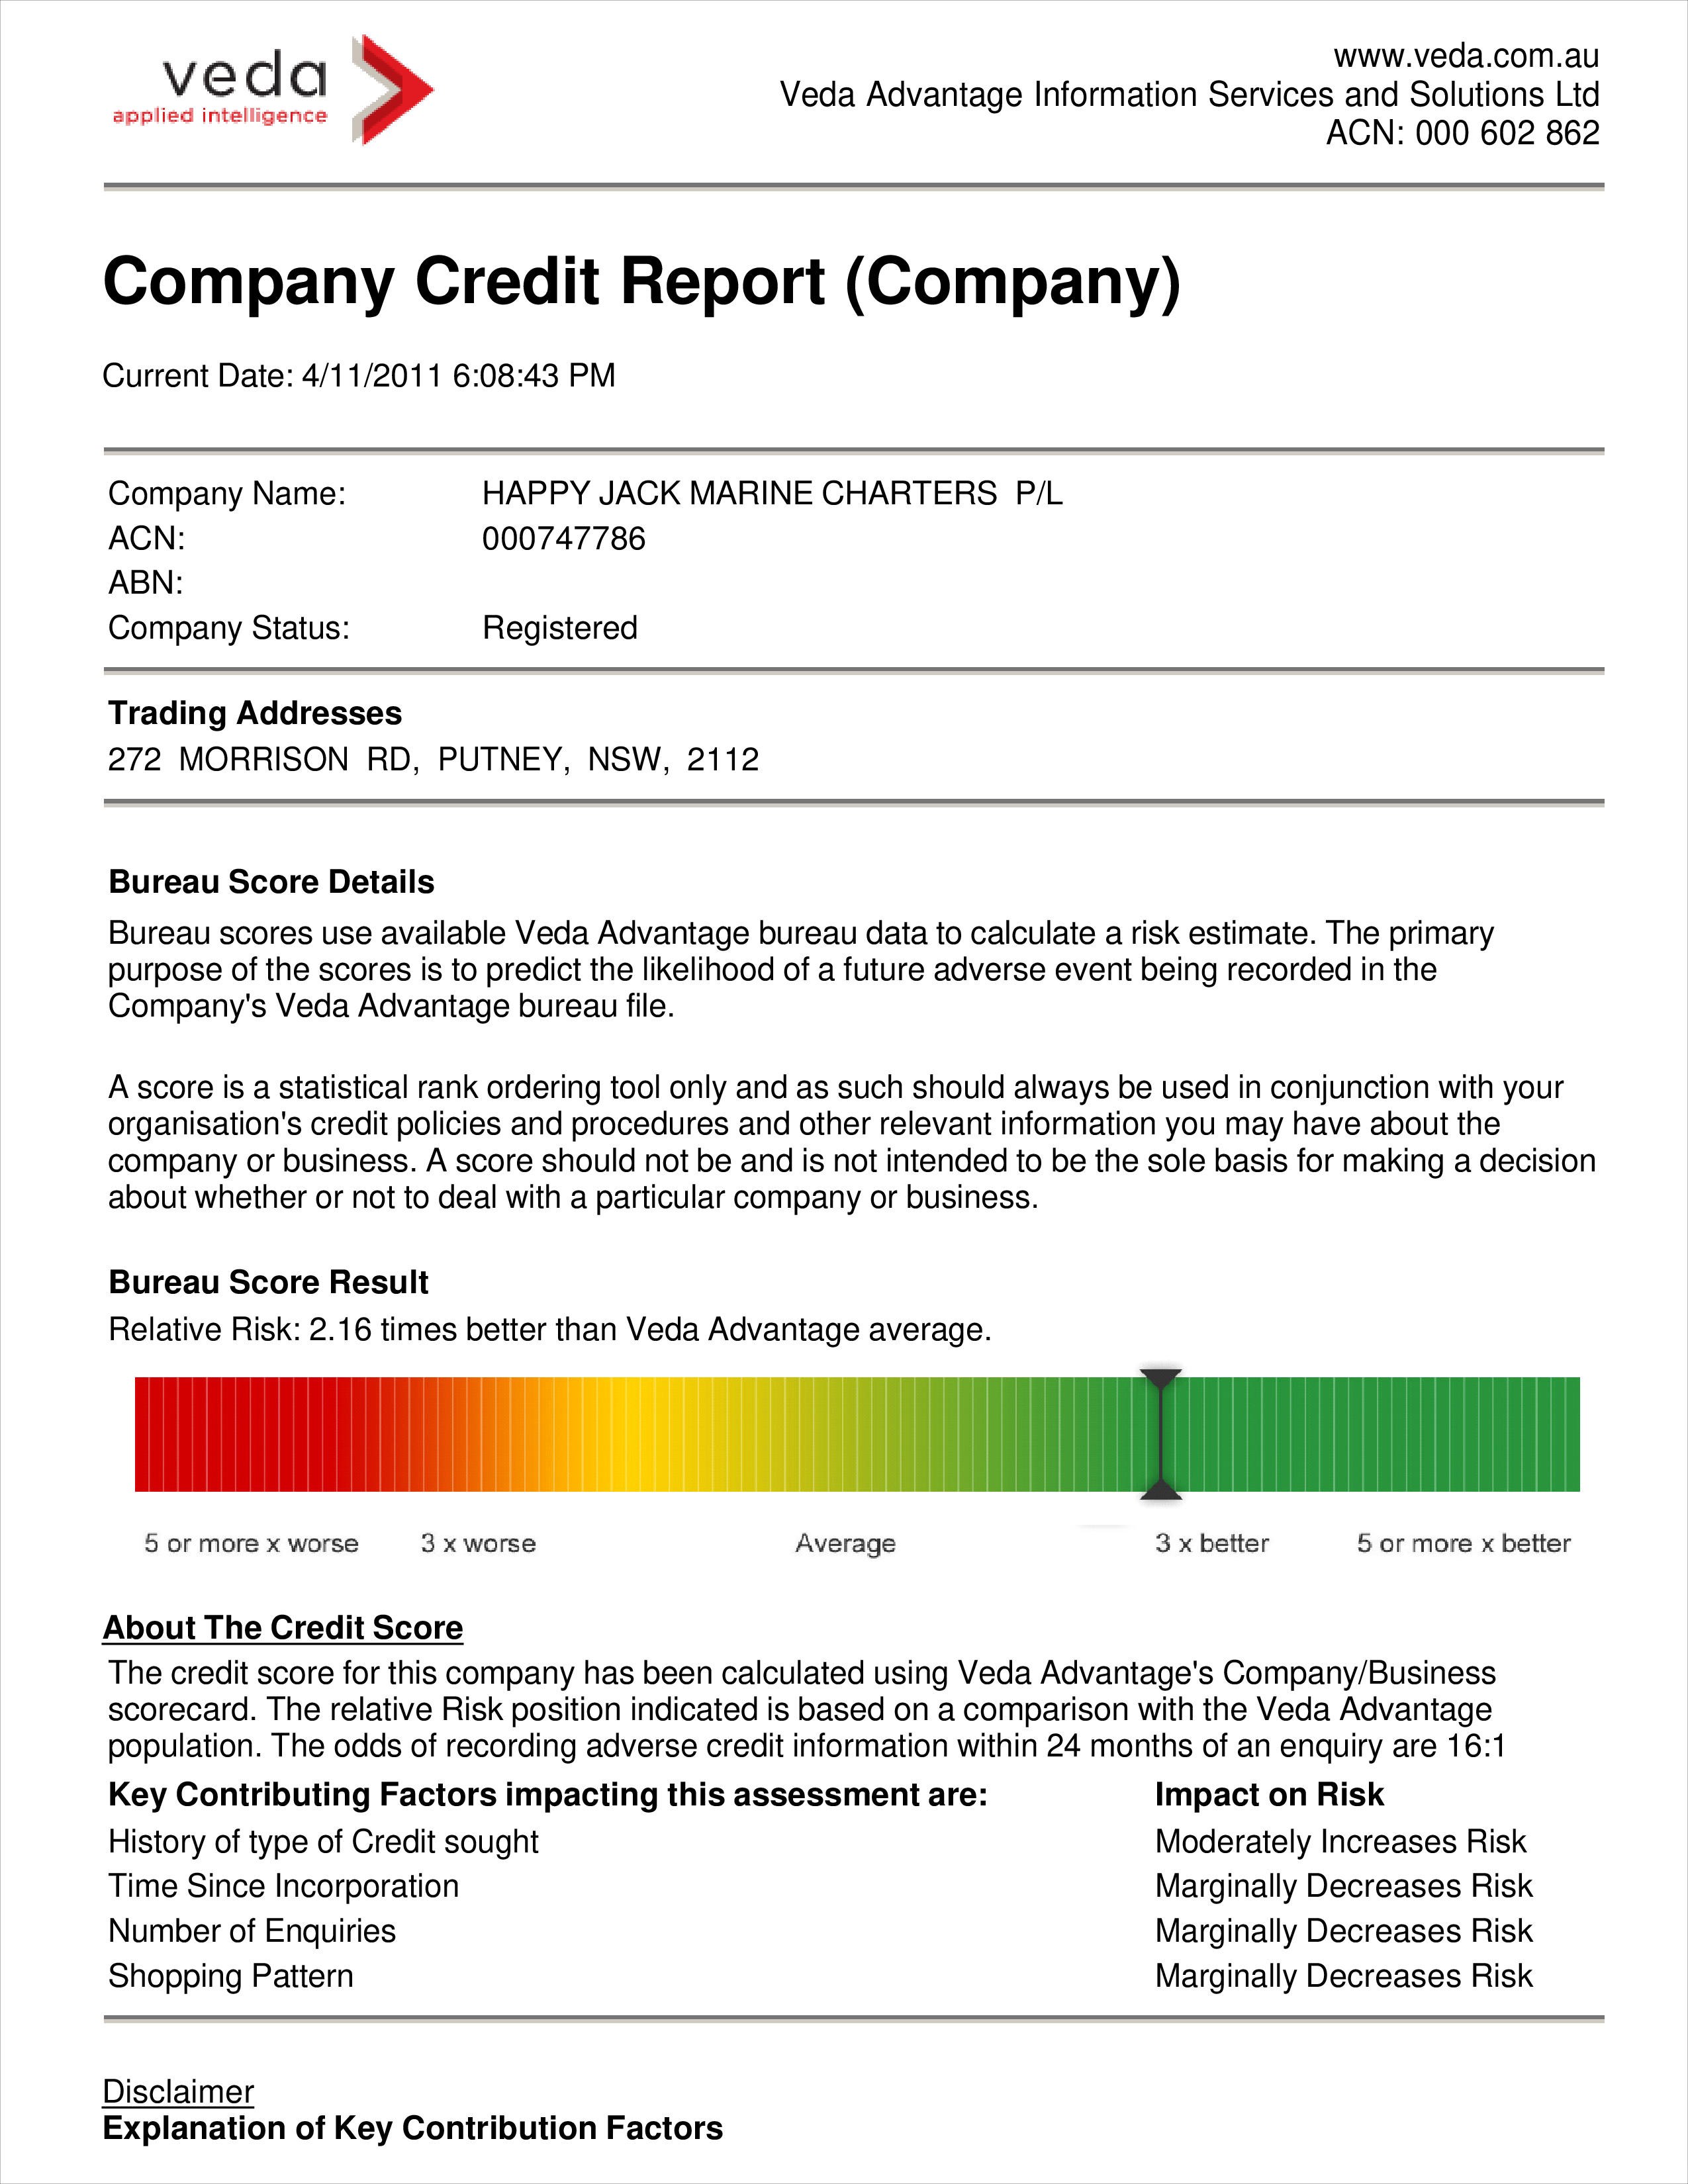 Free company credit report templates at allbusinesstemplates company credit report main image download template accmission Choice Image